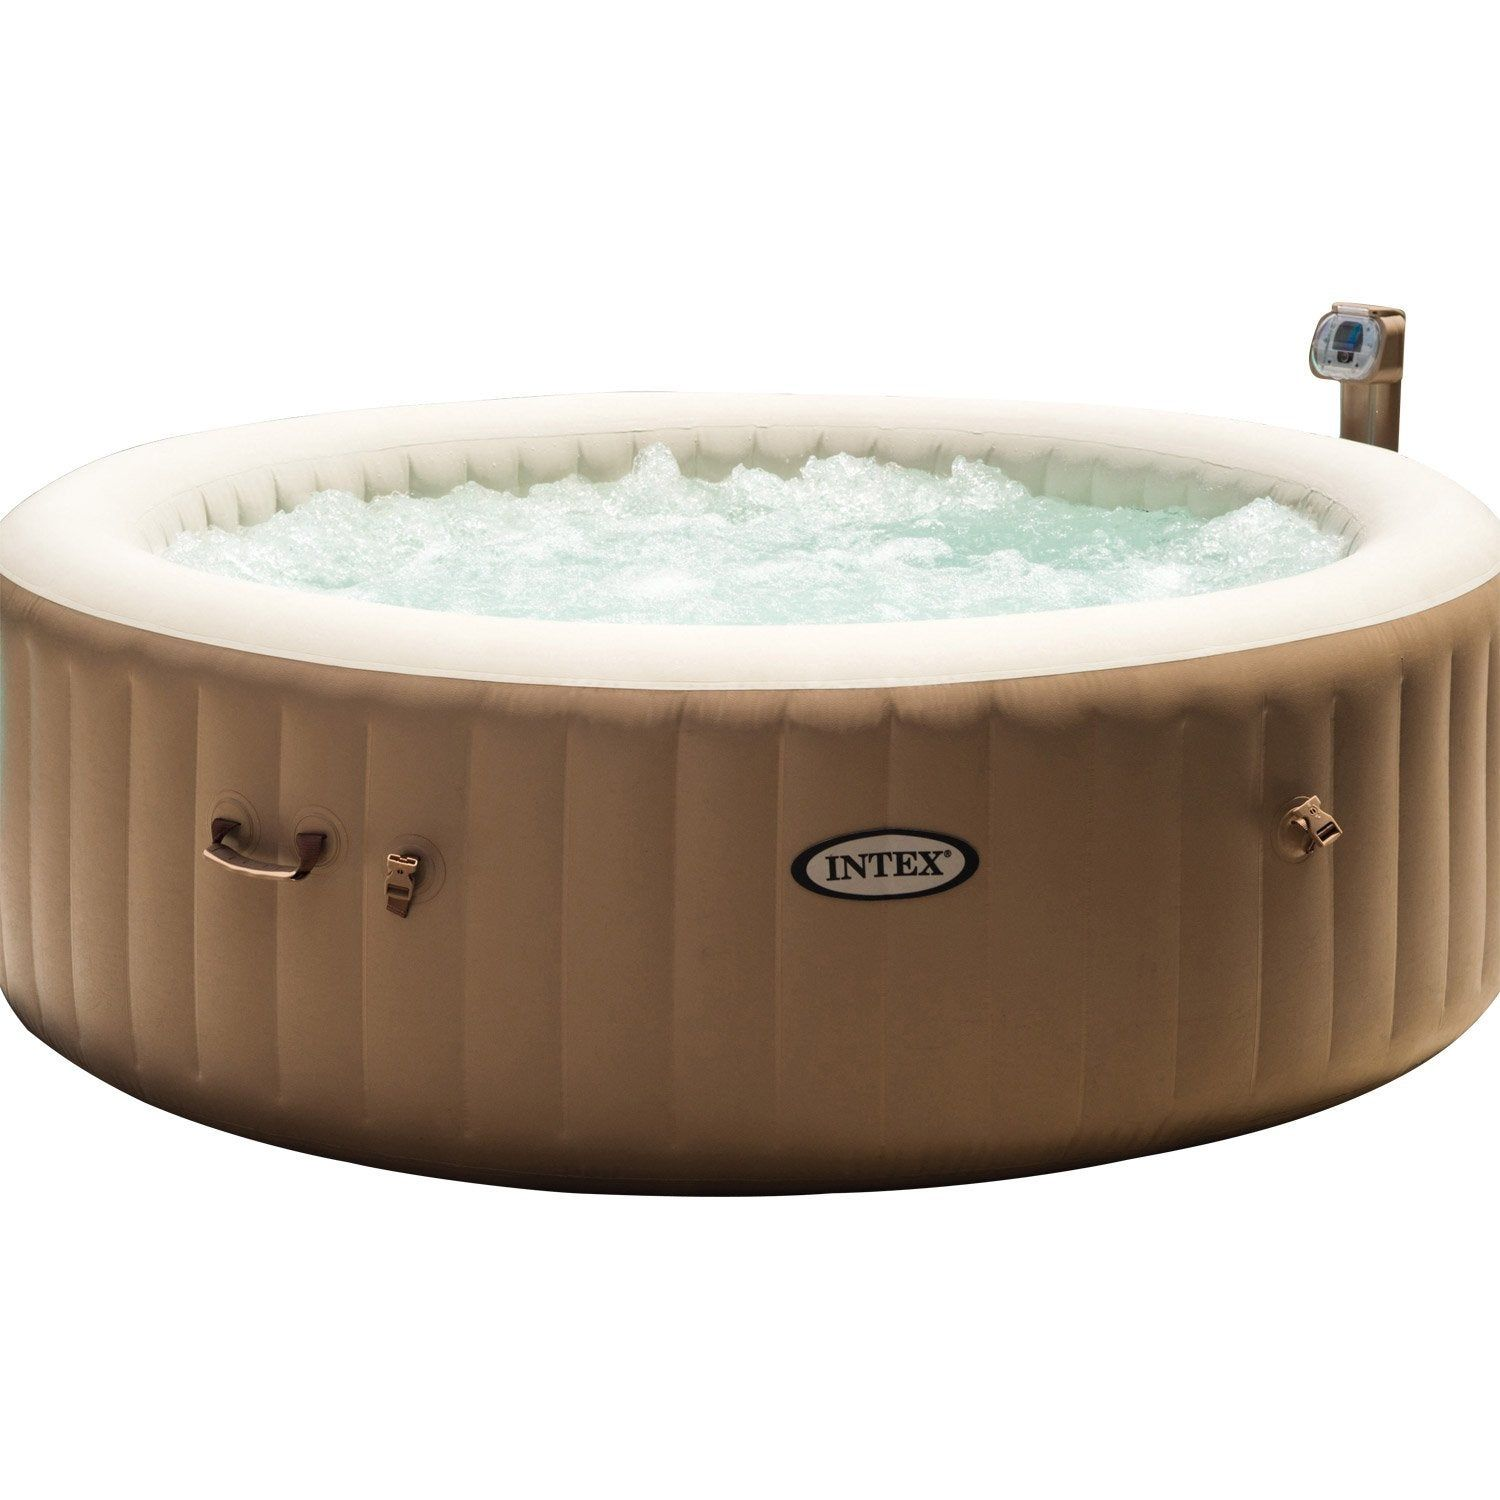 Spa Leroy Merlin Intex 6 Places spa gonflable intex pure spa bulles rond, 6 places assises